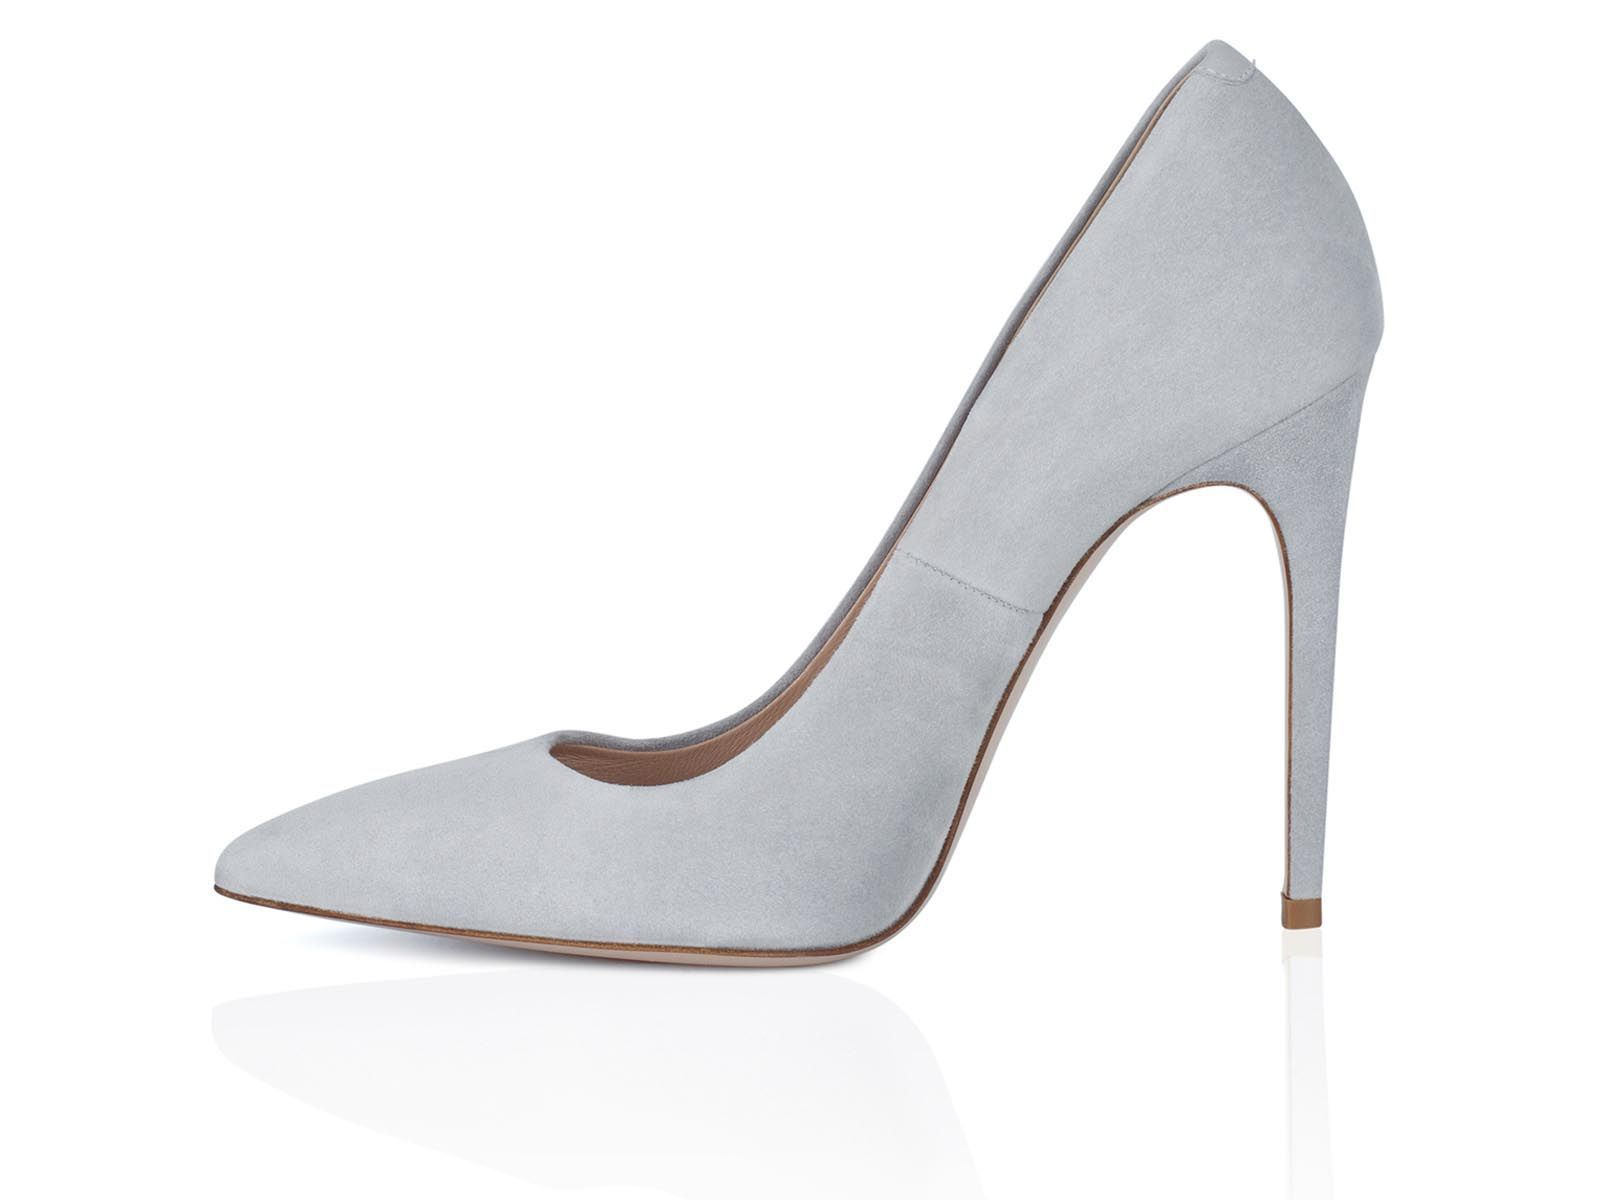 women pumps in grey suede leather 100